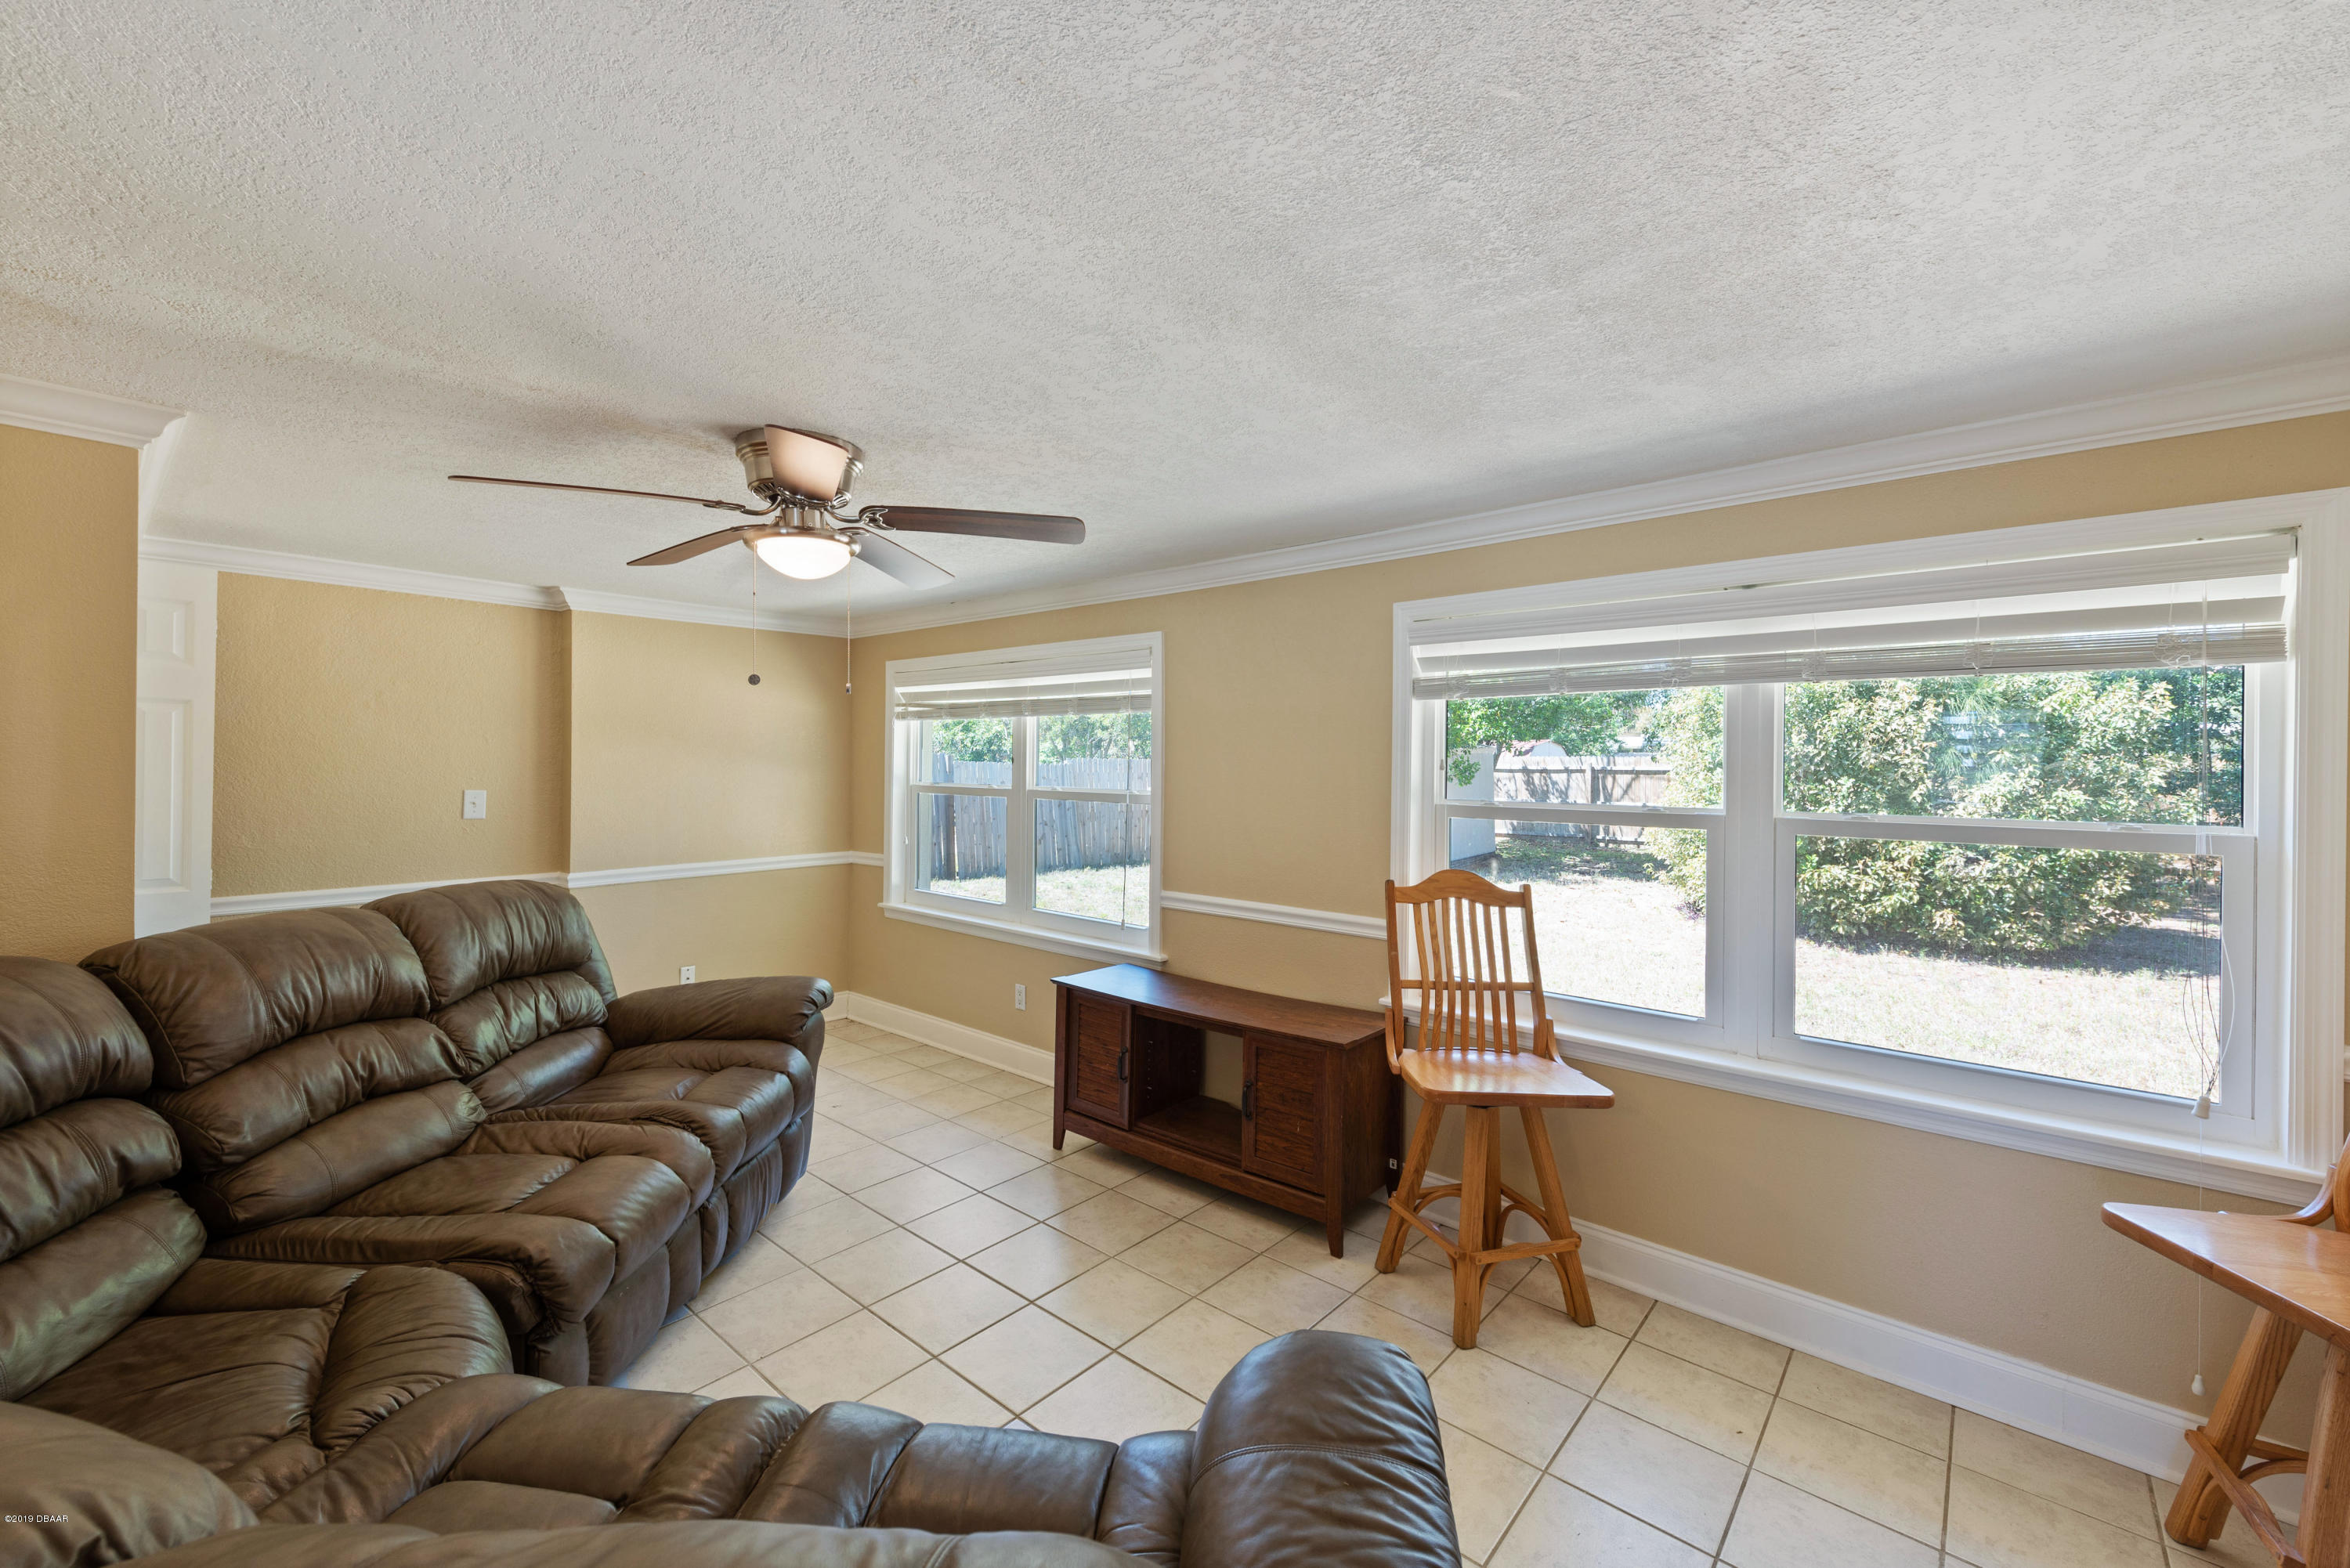 1328 Phillips Daytona Beach - 2